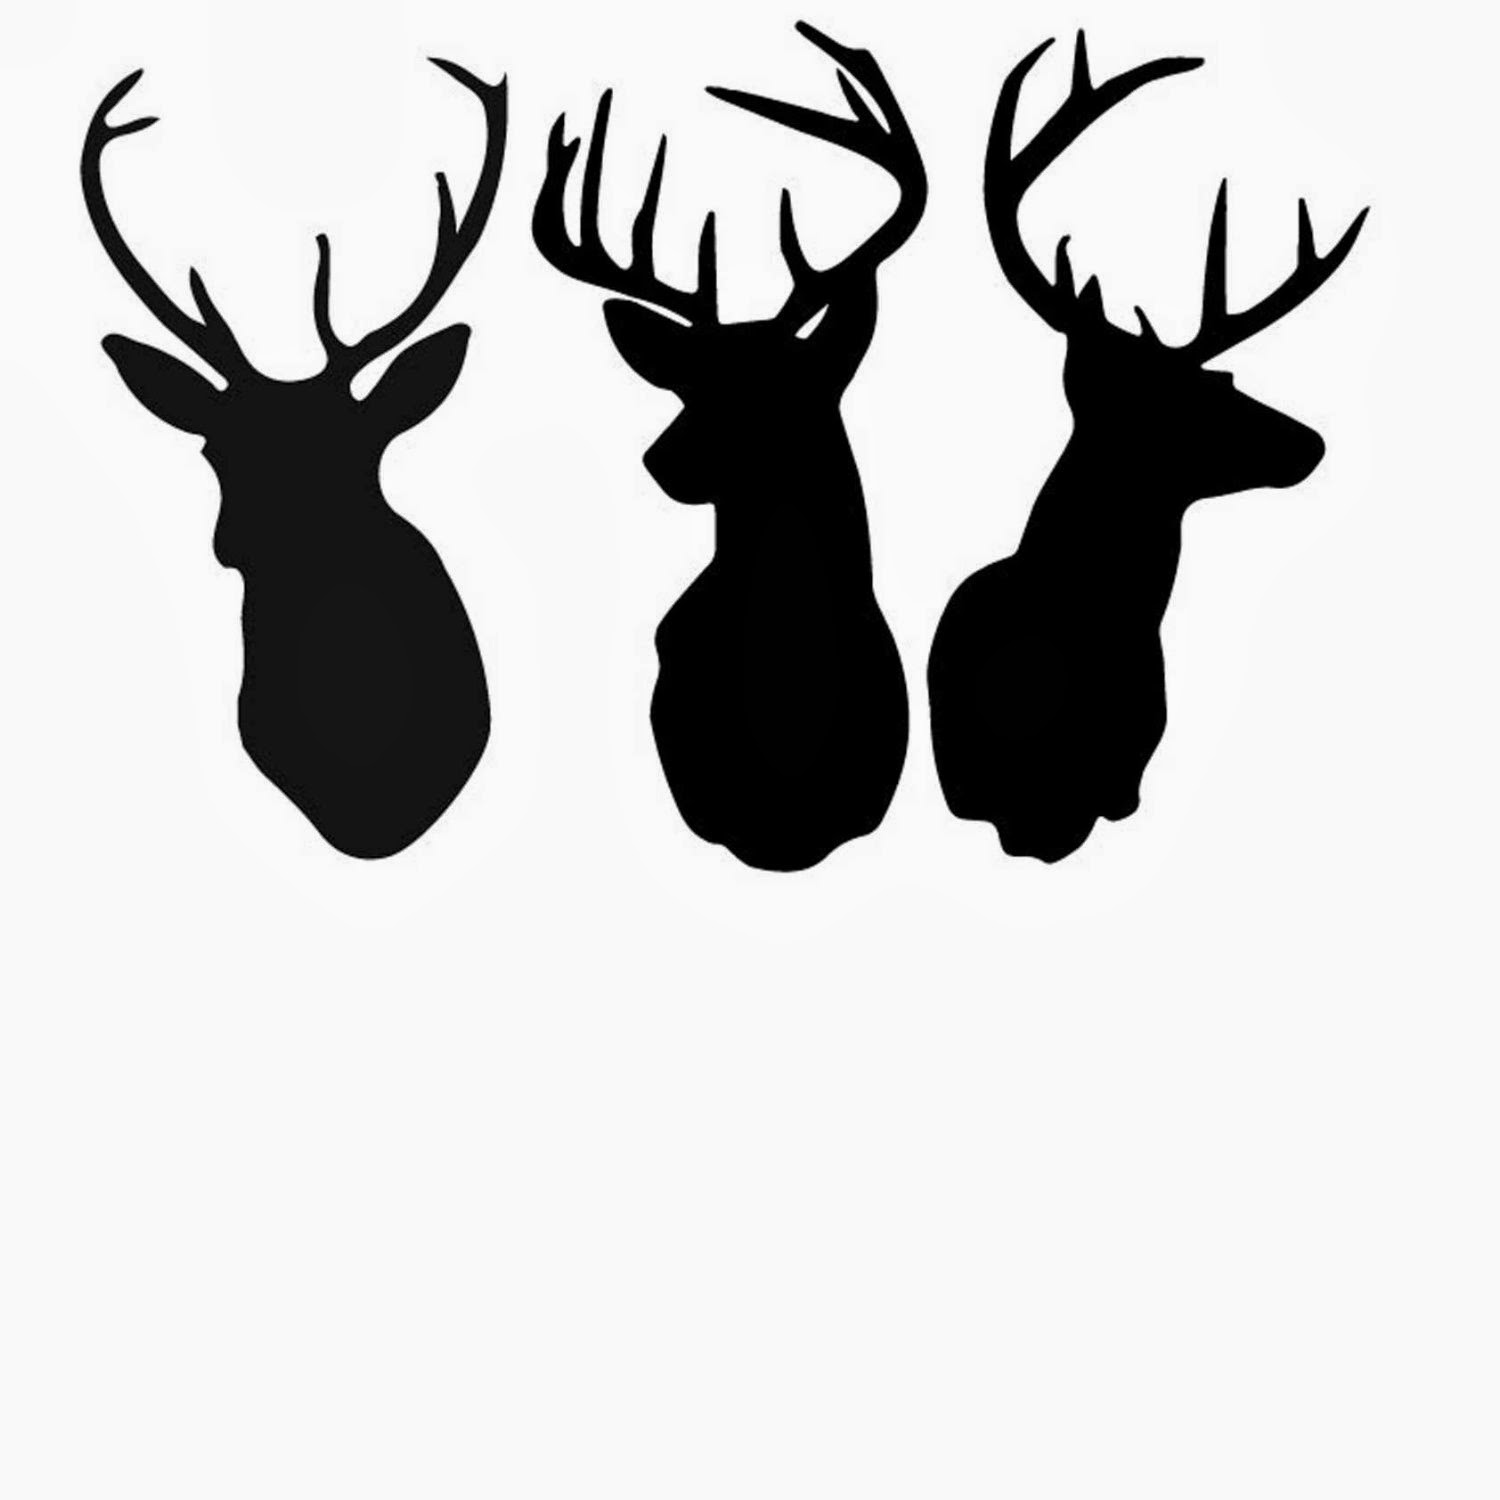 Reindeer Head Silhouette Template Than glue the silhouette to